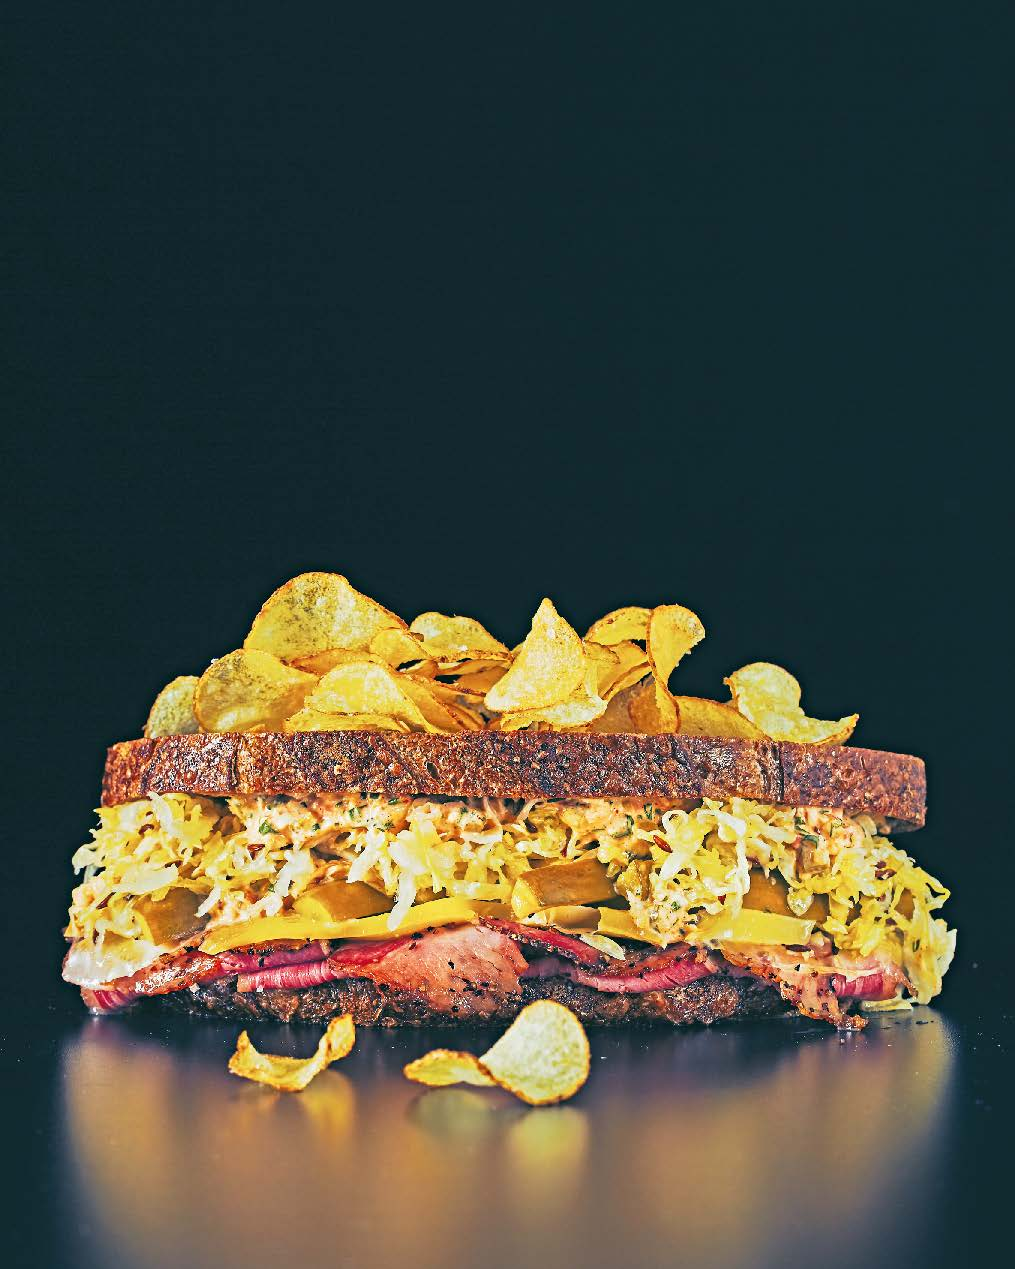 Toasted Reuben: emmental, pastrami, sauerkraut, thousand island dressing, dill pickles + potato chips.